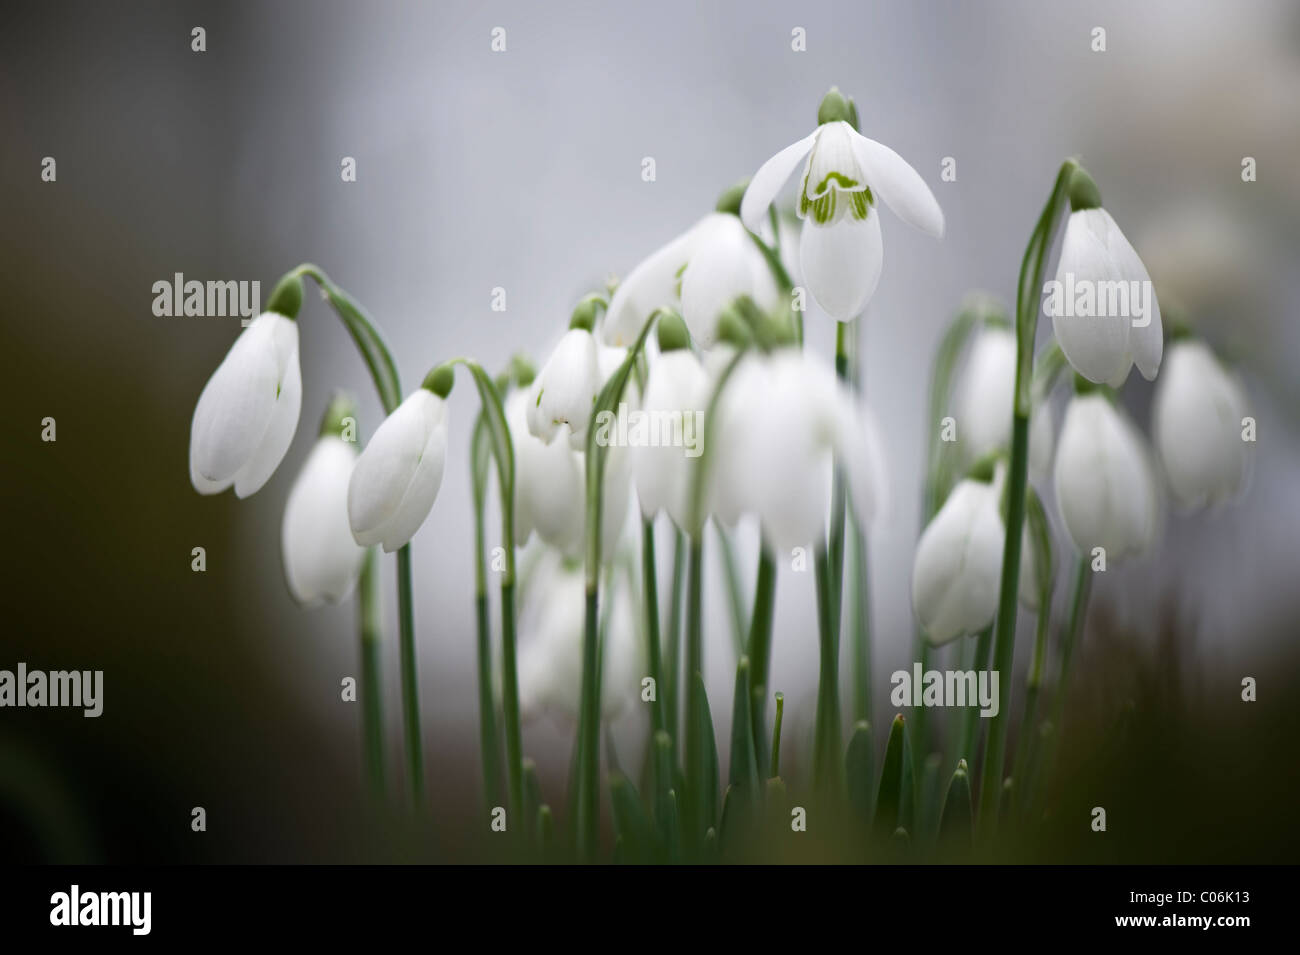 Galanthus nivalis - common snowdrops - Stock Image